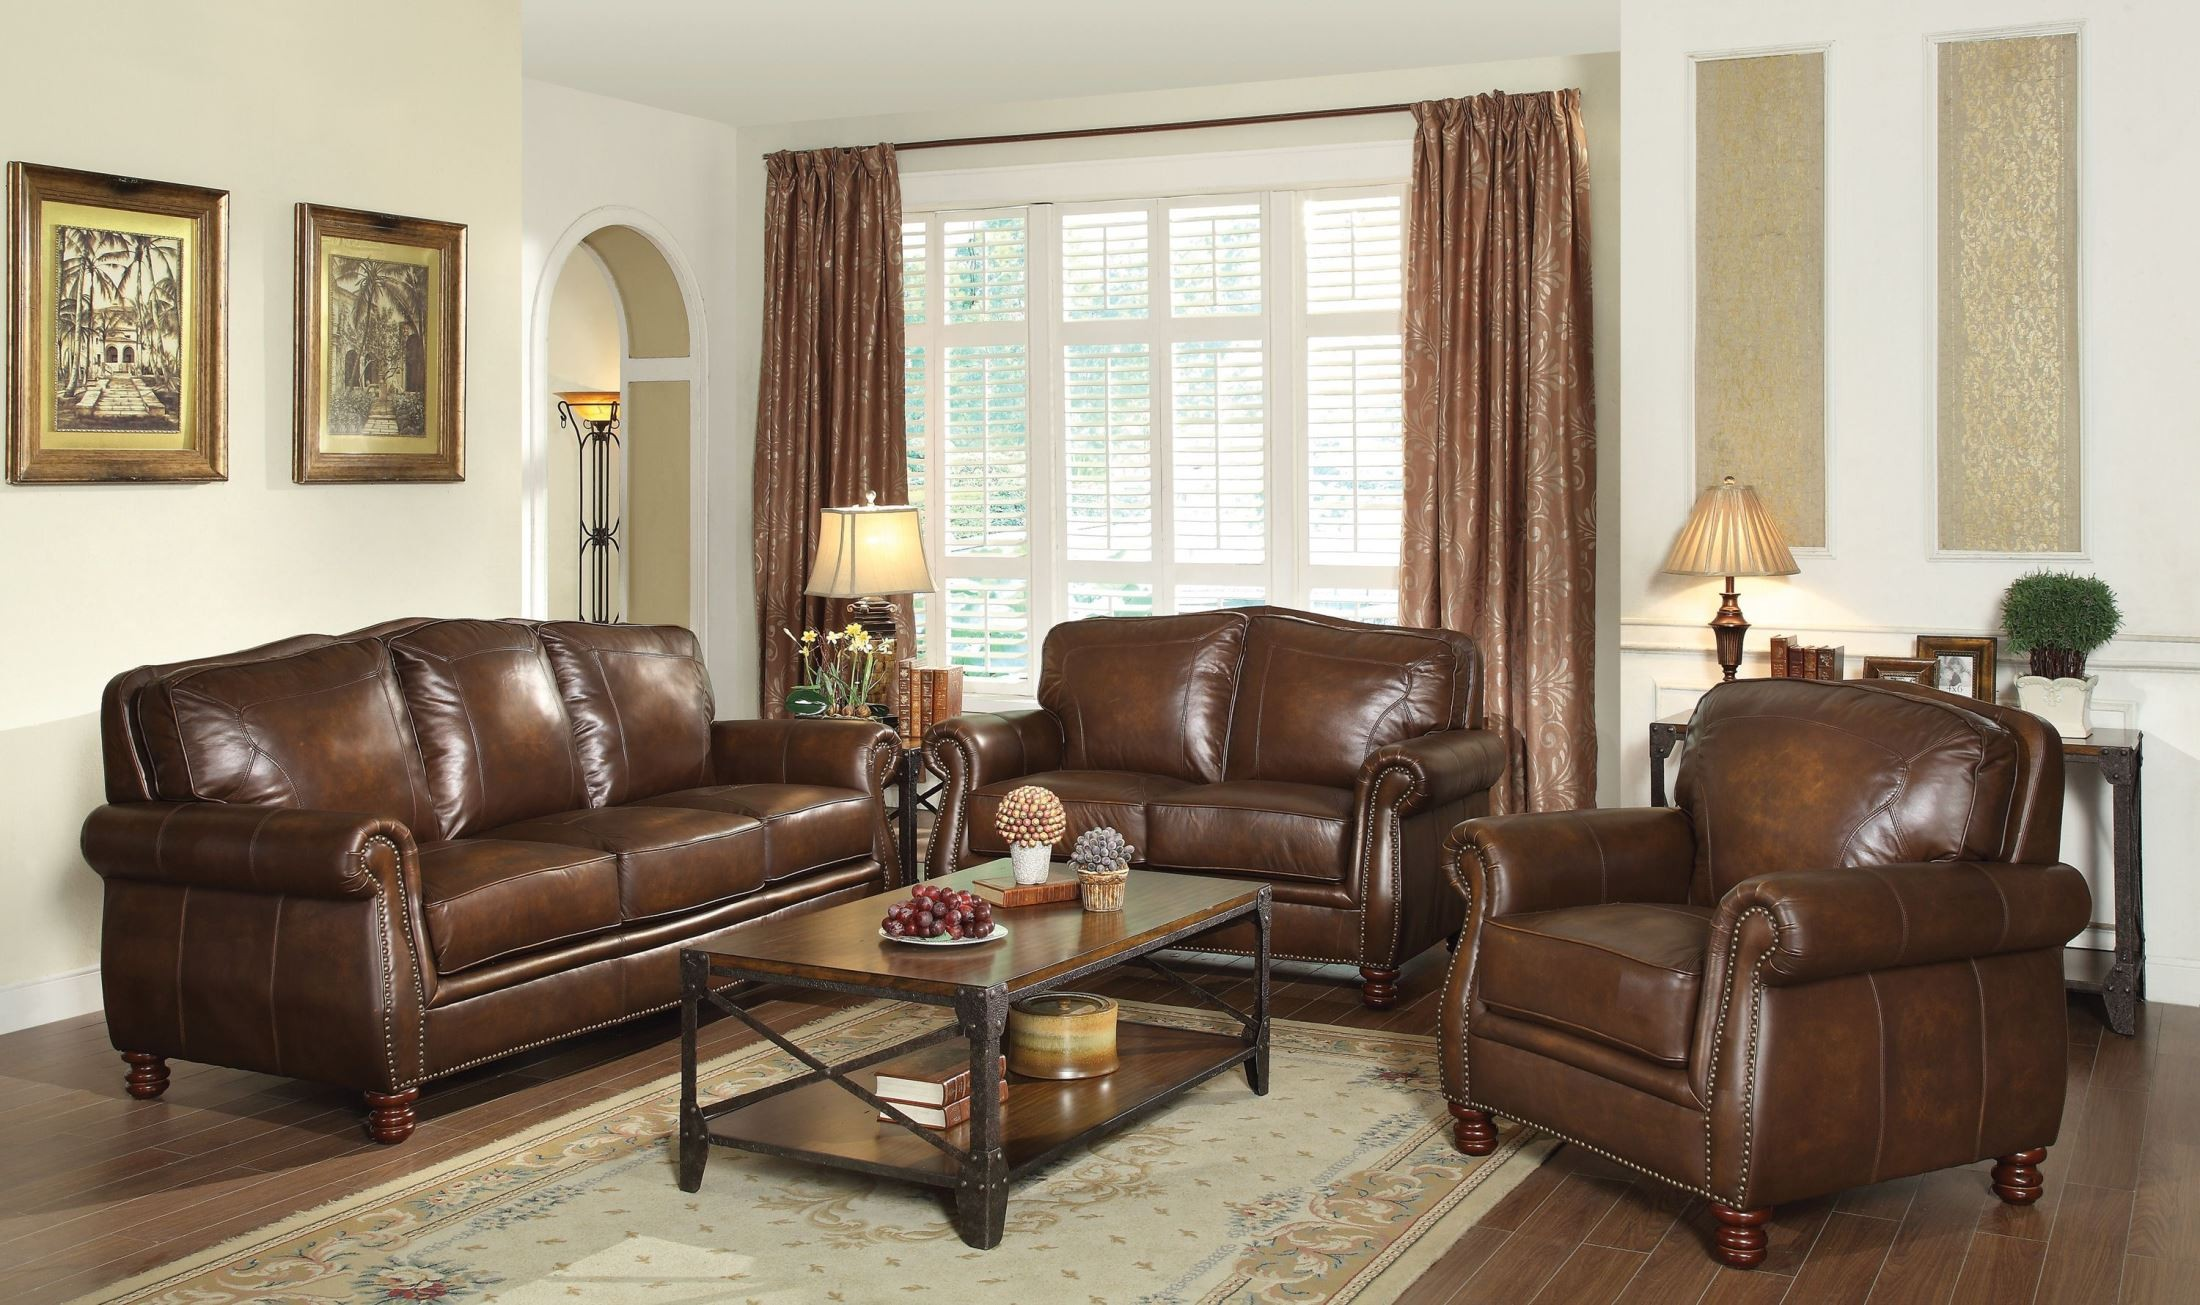 Montbrook Living Room Set From Coaster 503981 Coleman